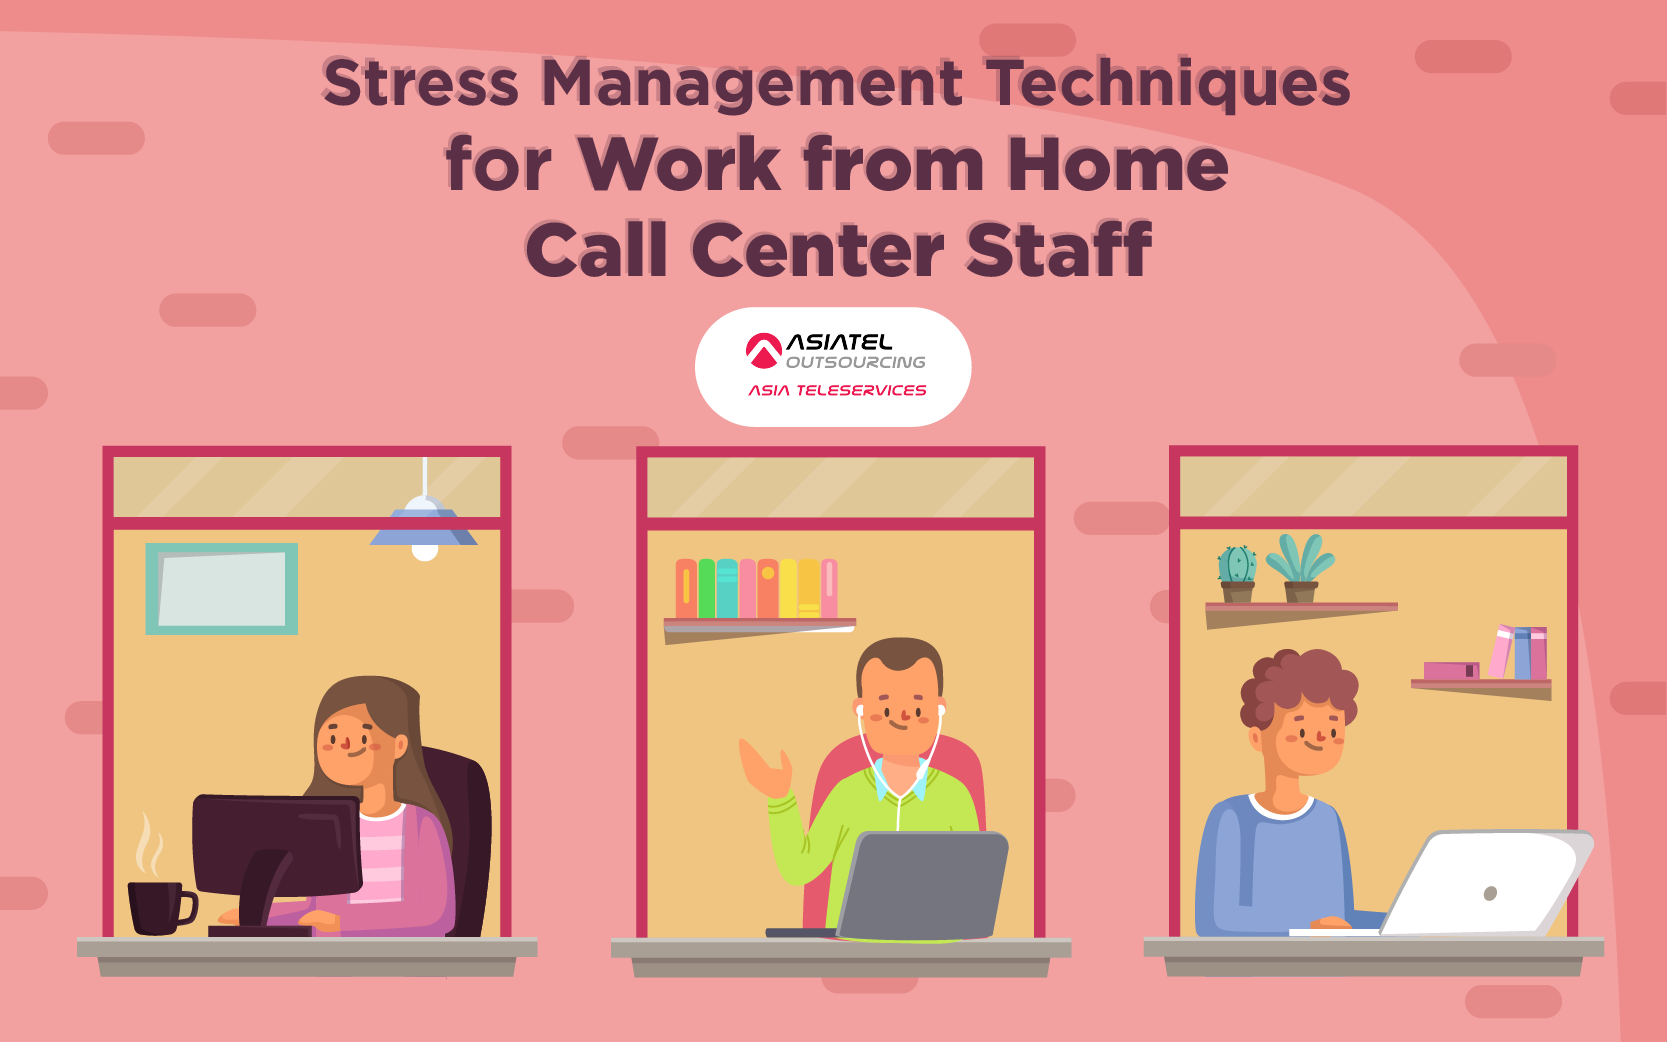 Stress Management Techniques for Work From Home Call Center Staff